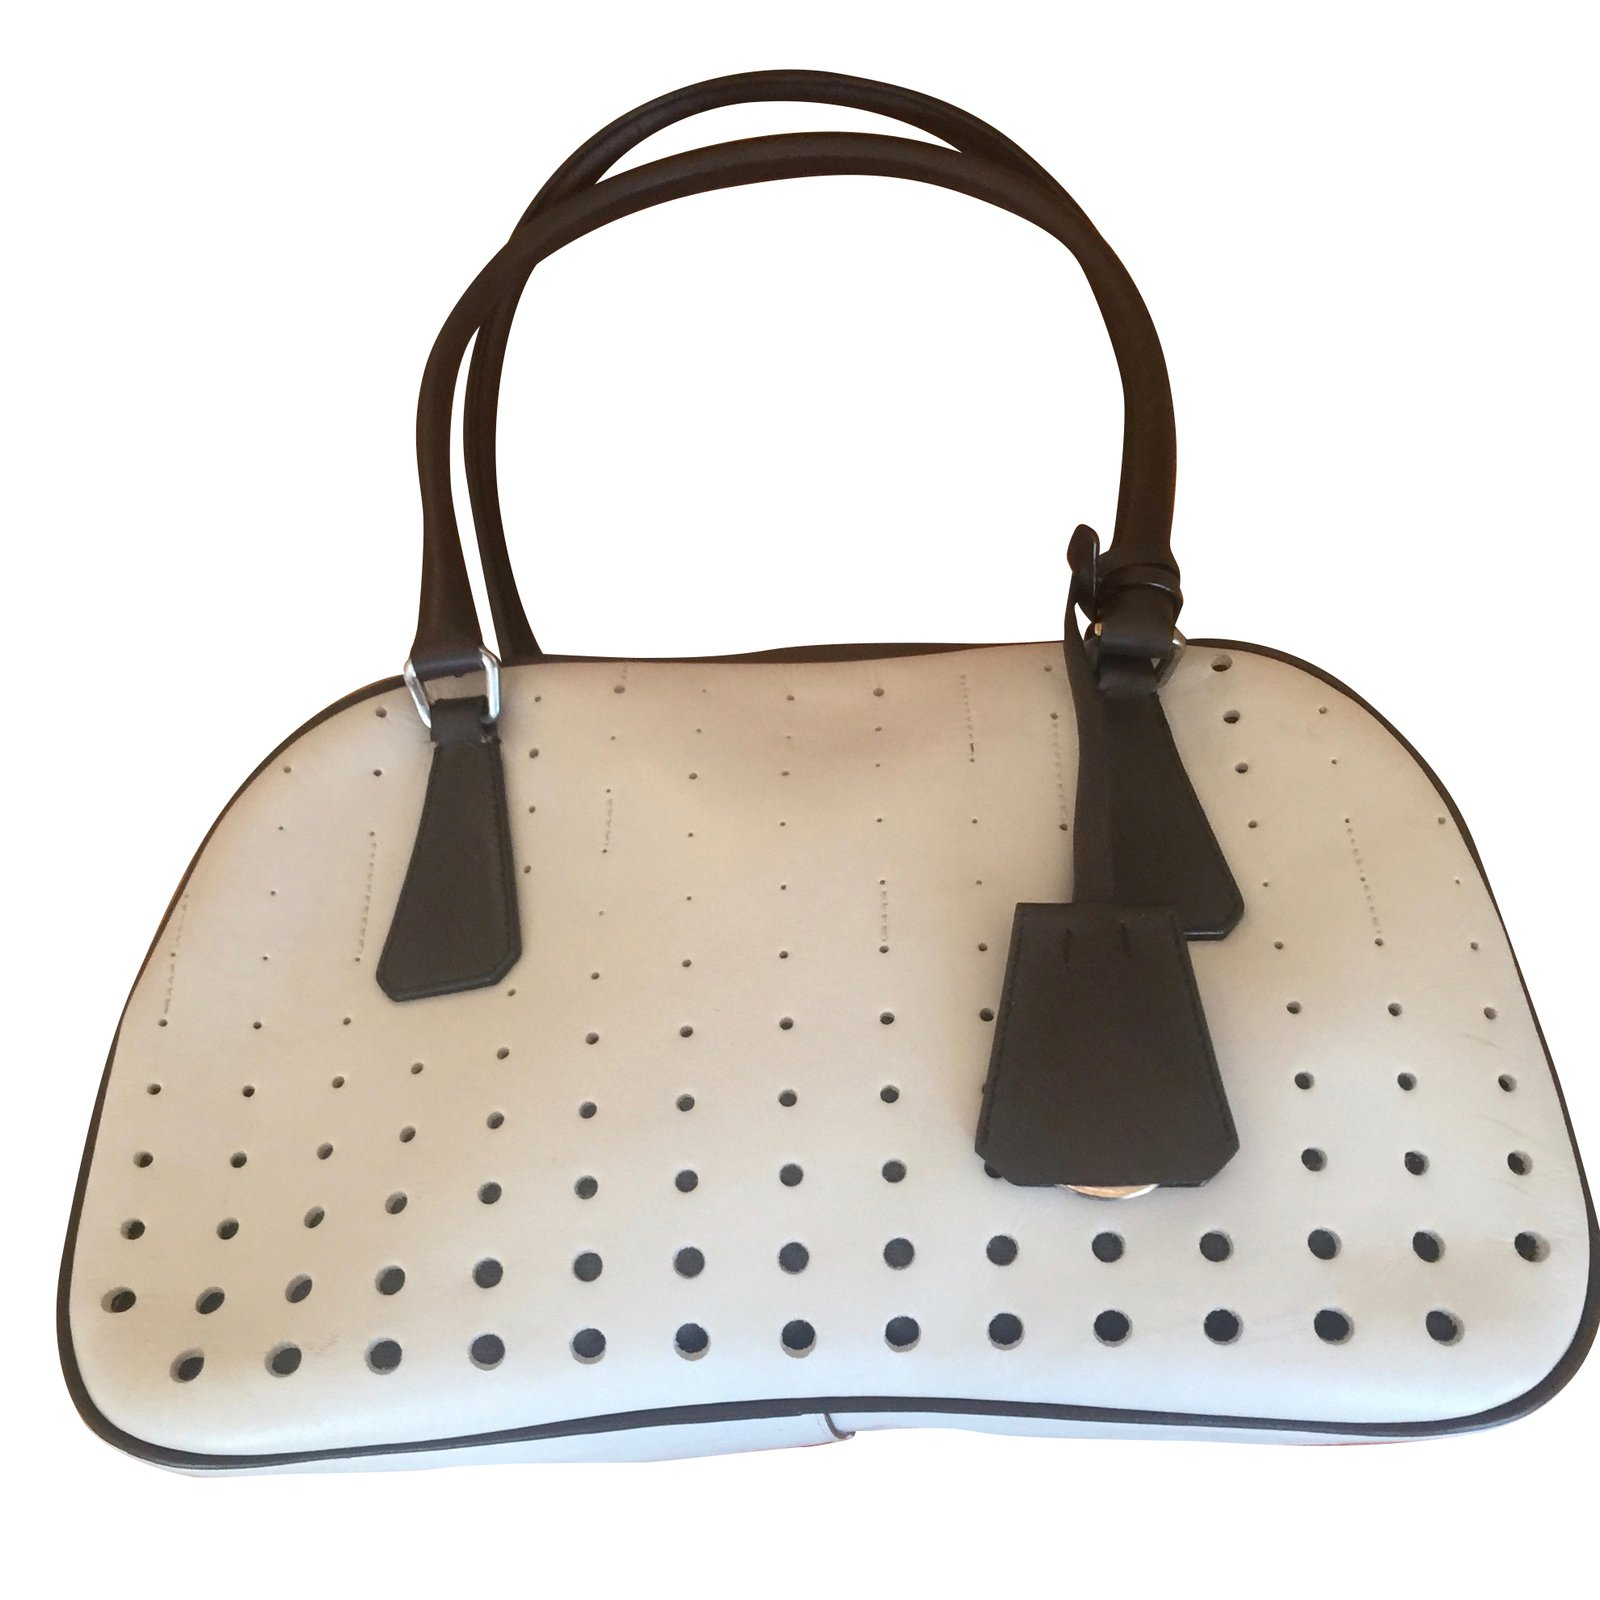 ... netherlands prada bowling handbags leather white ref.38197 b0882 64be0 75d228622944b